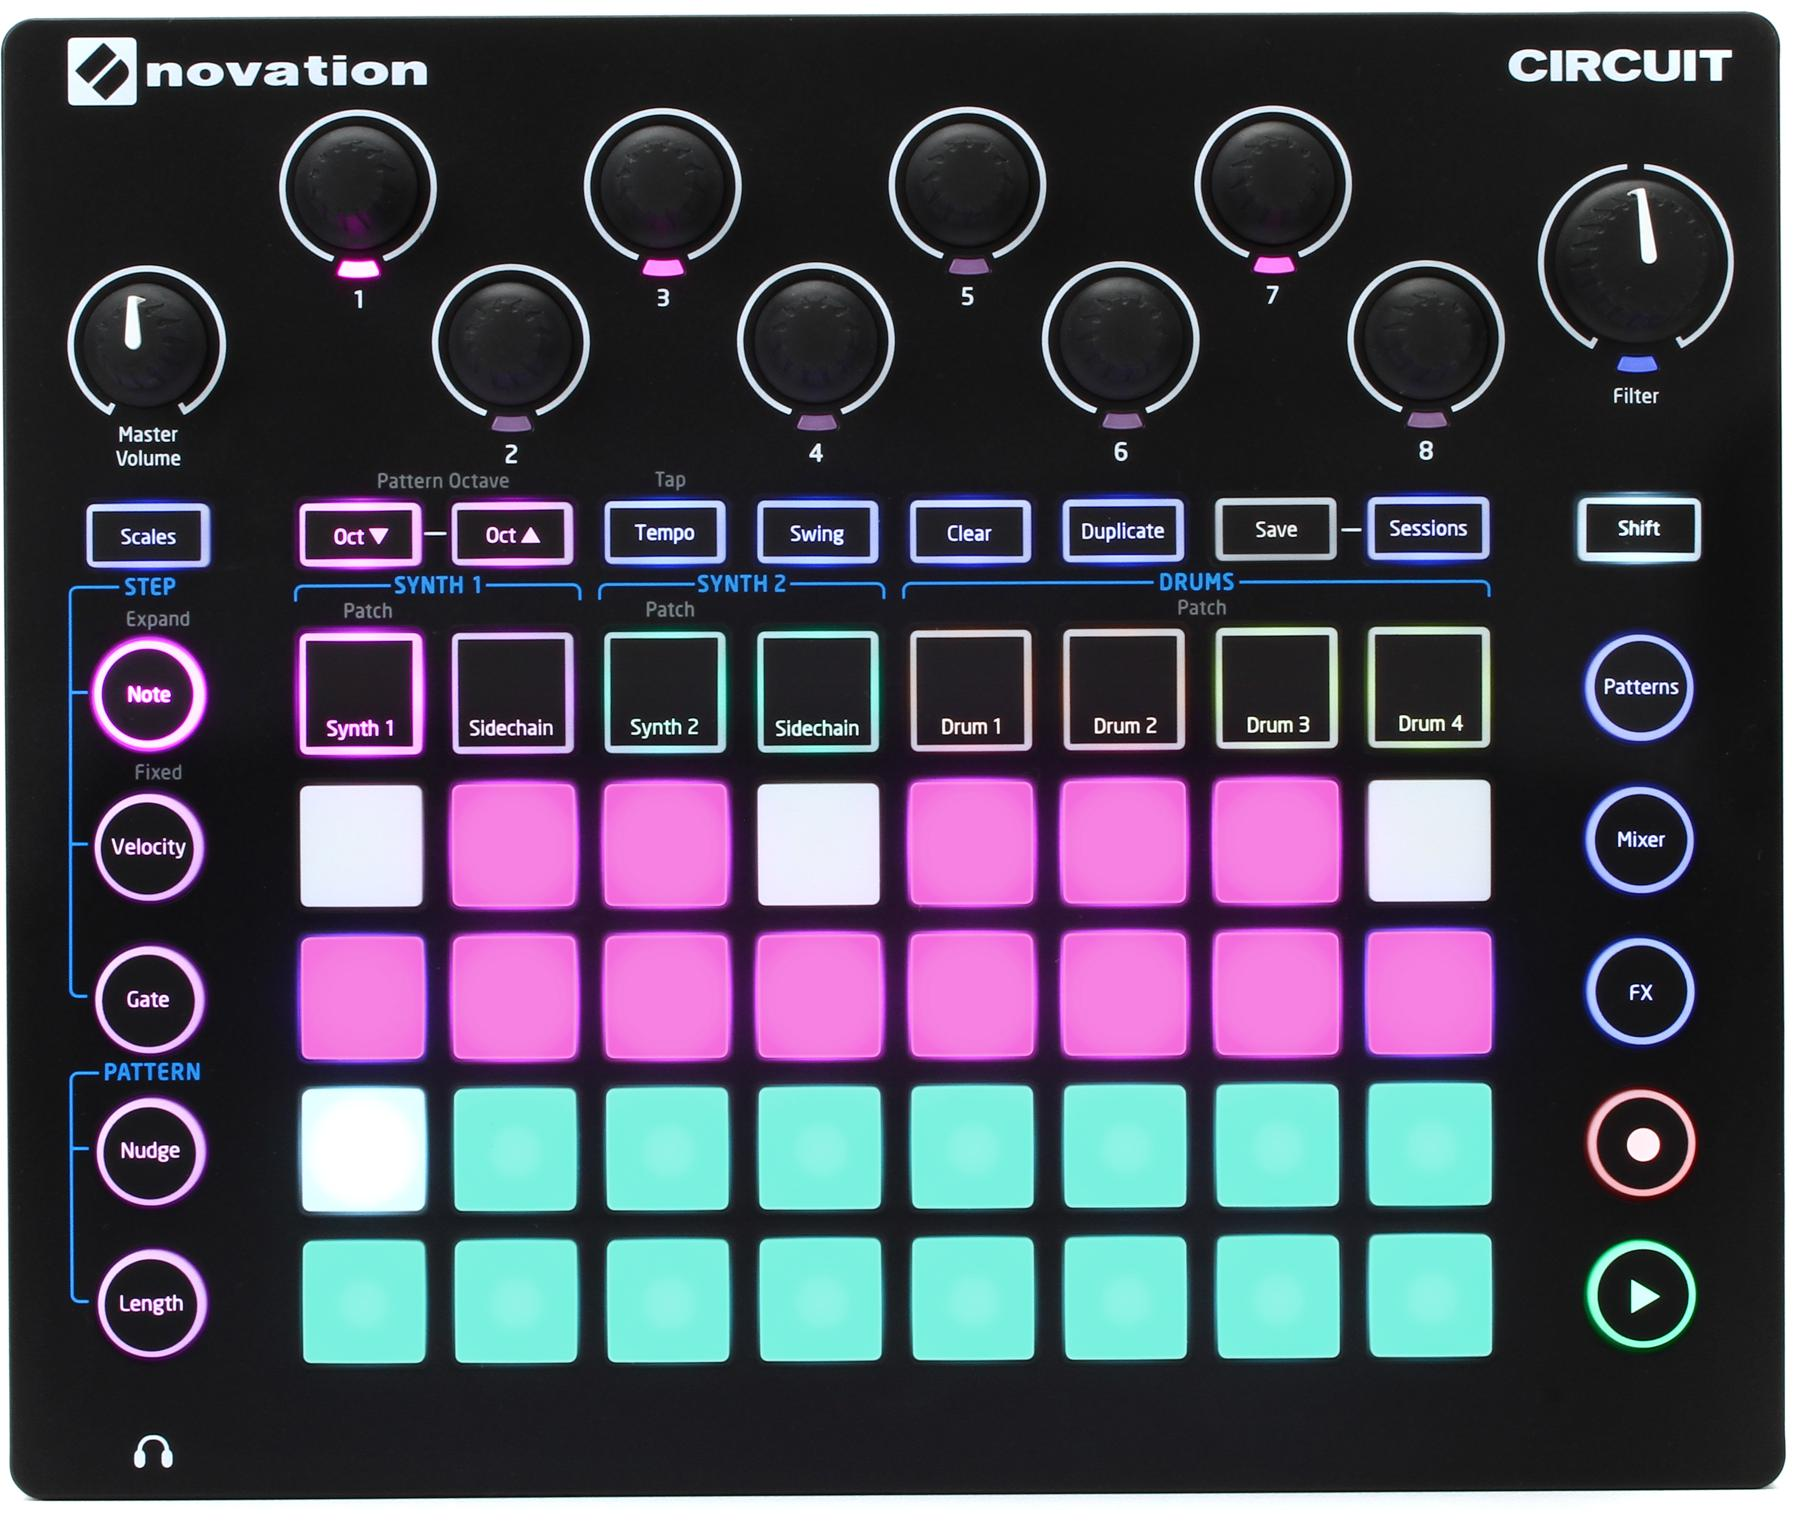 1. Novation Circuit Groovebox with Sample Import